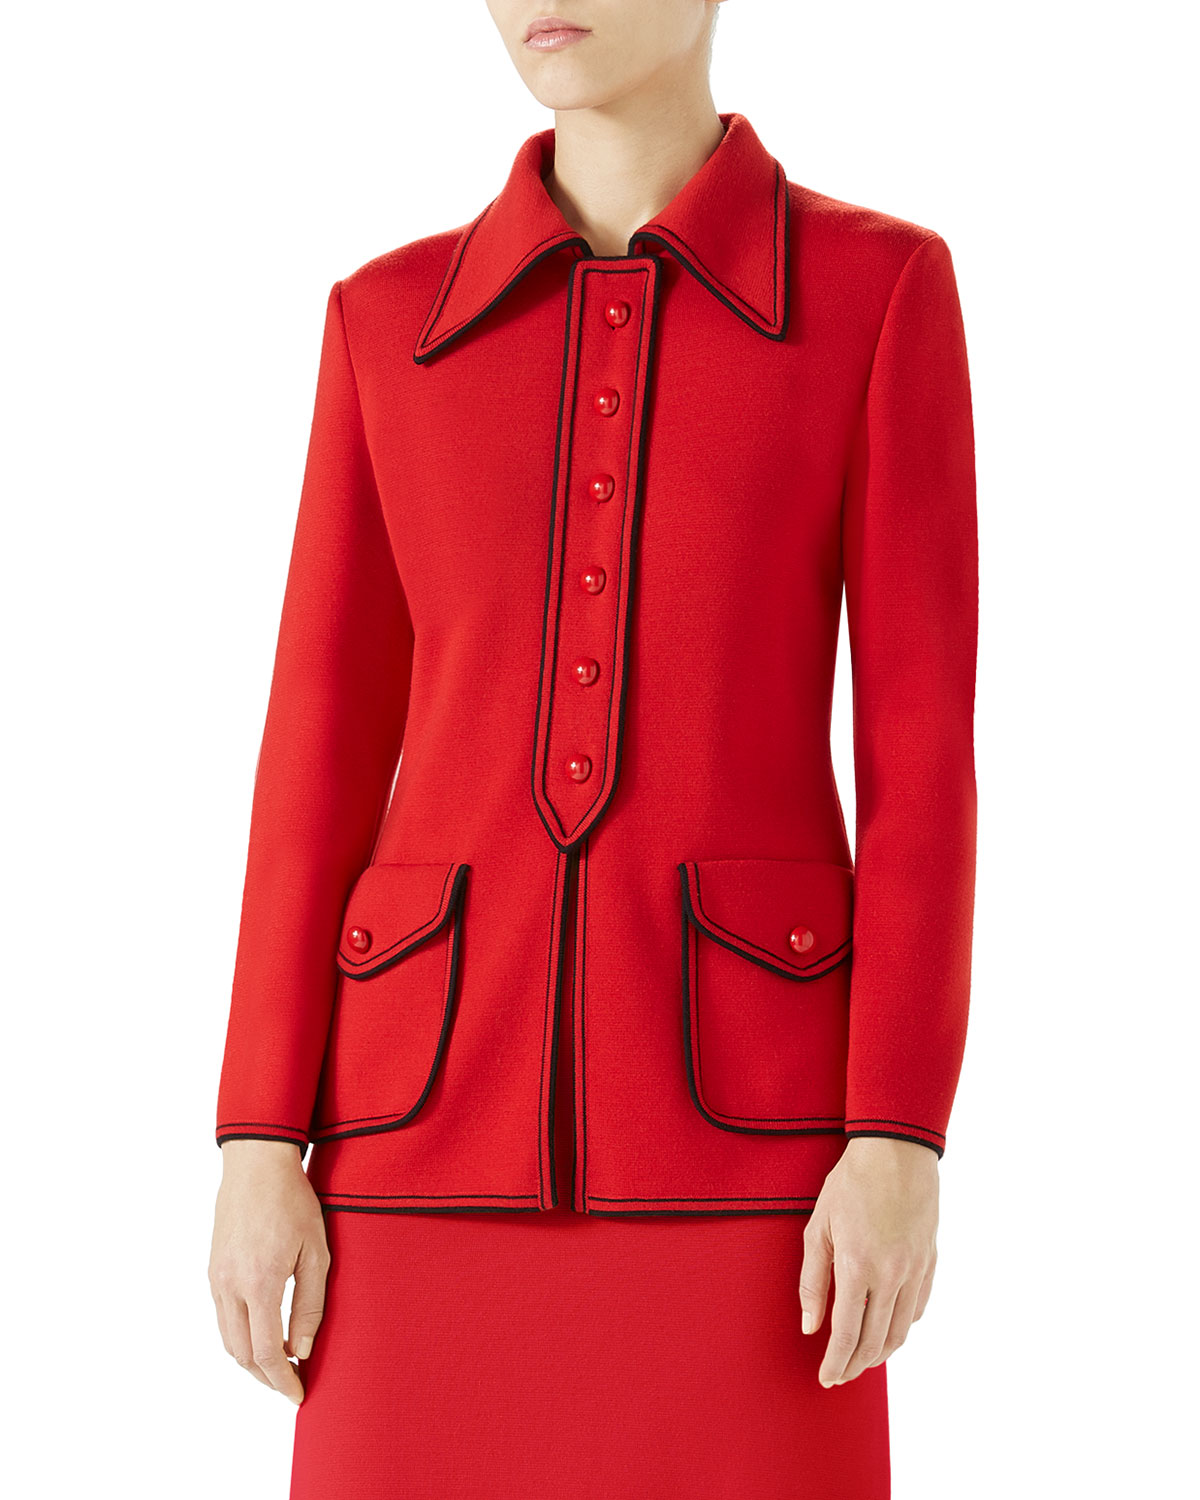 Long-Sleeve Polo-Neck Fine Wool Cardigan With Guciffy Stamp, Red/Black